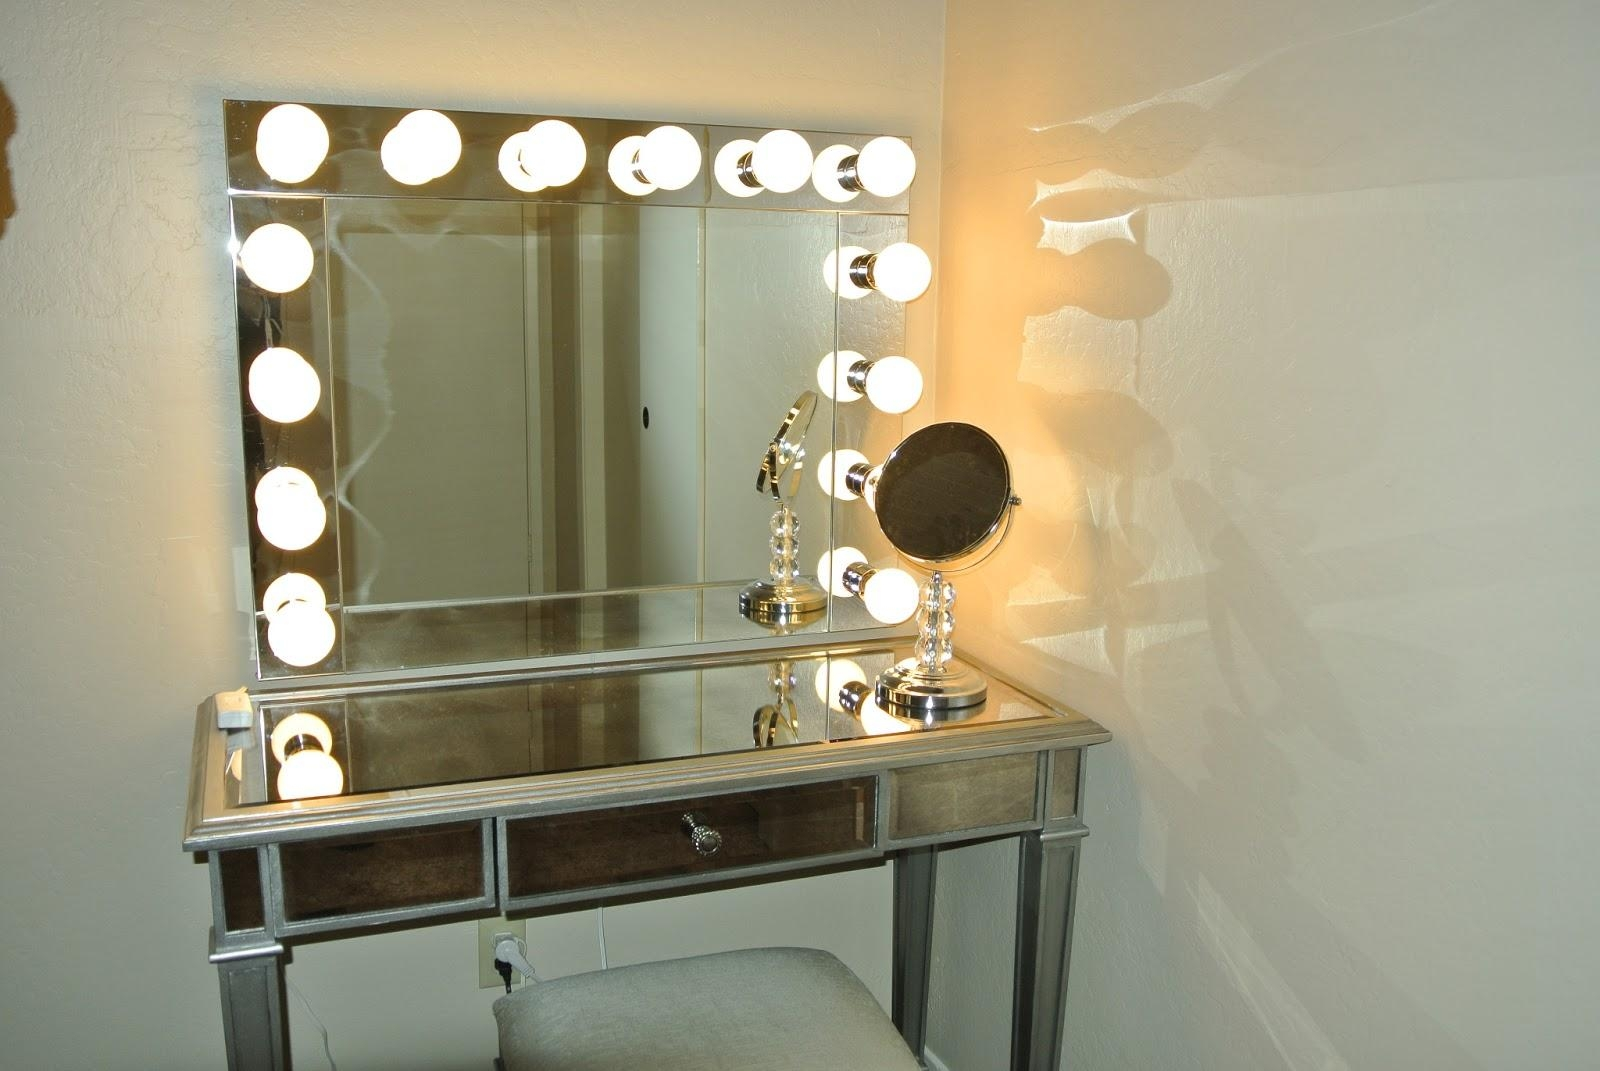 Find And Save Vanity Wall Mirror Lighted Costco Bathroom | Master Pertaining To Lighted Vanity Mirrors For Bathroom (Image 10 of 20)